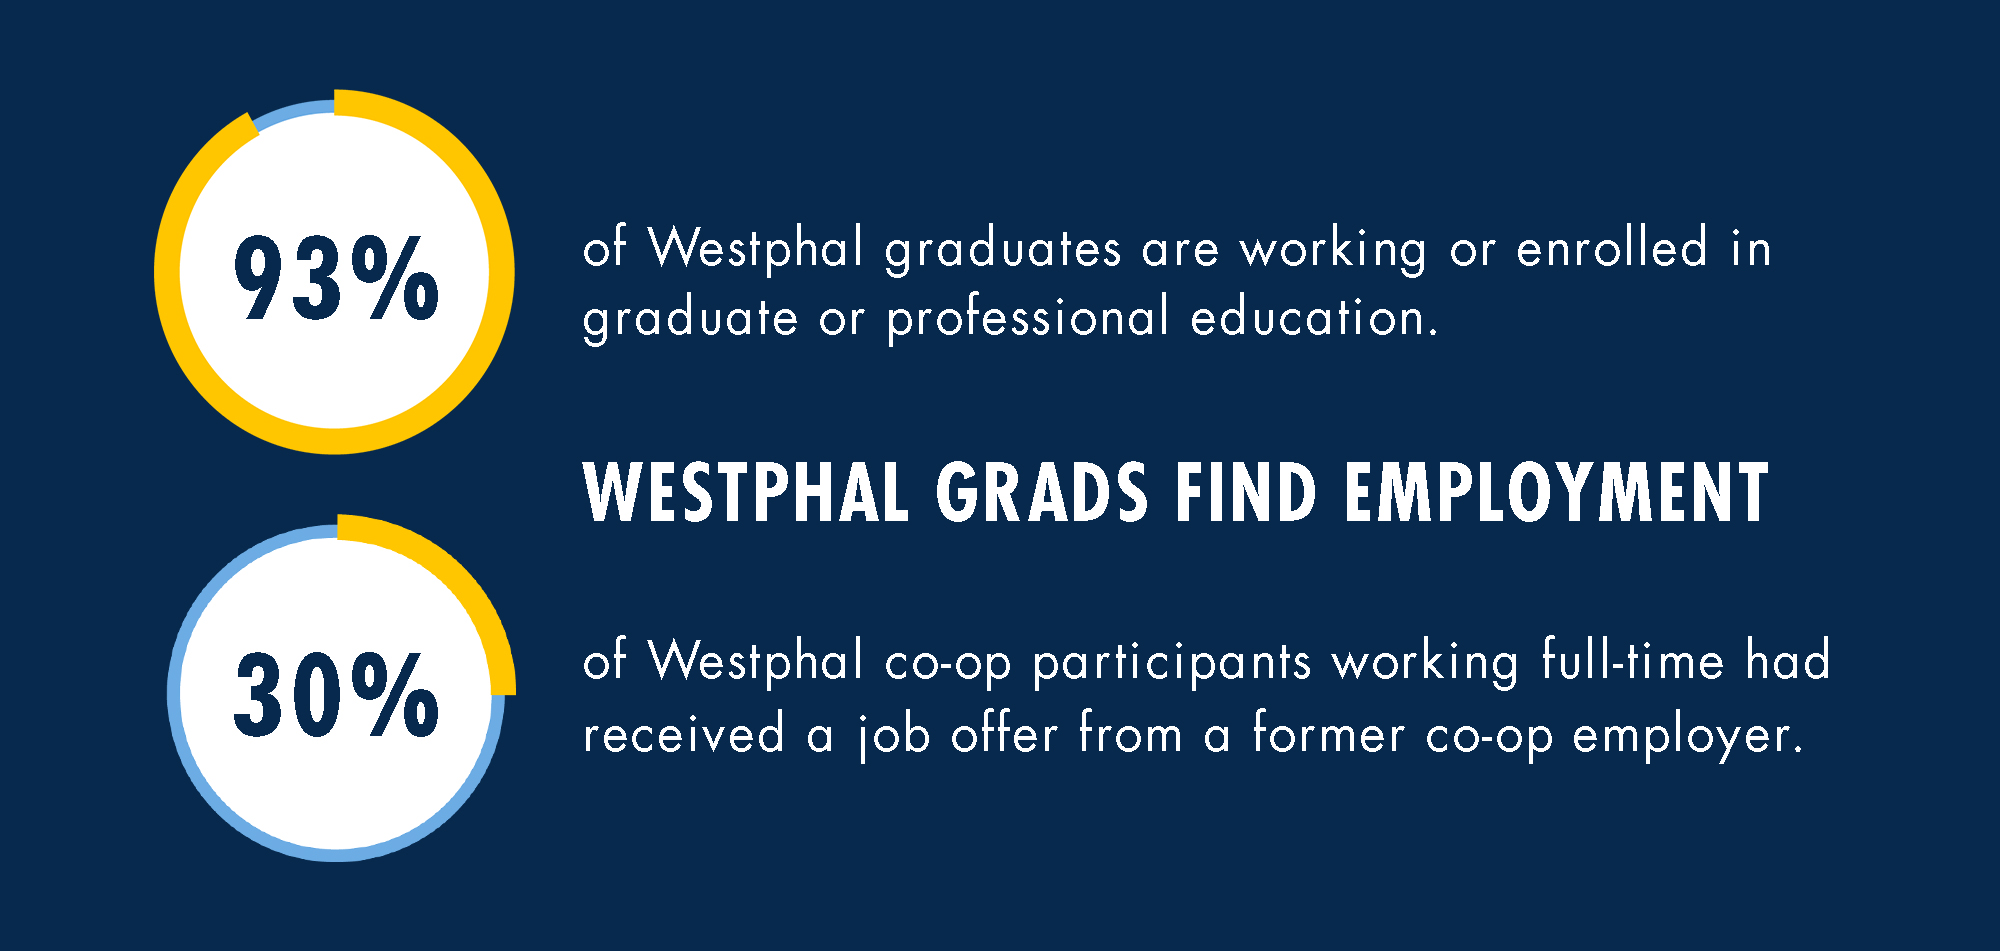 Westphal Grads Find Employment